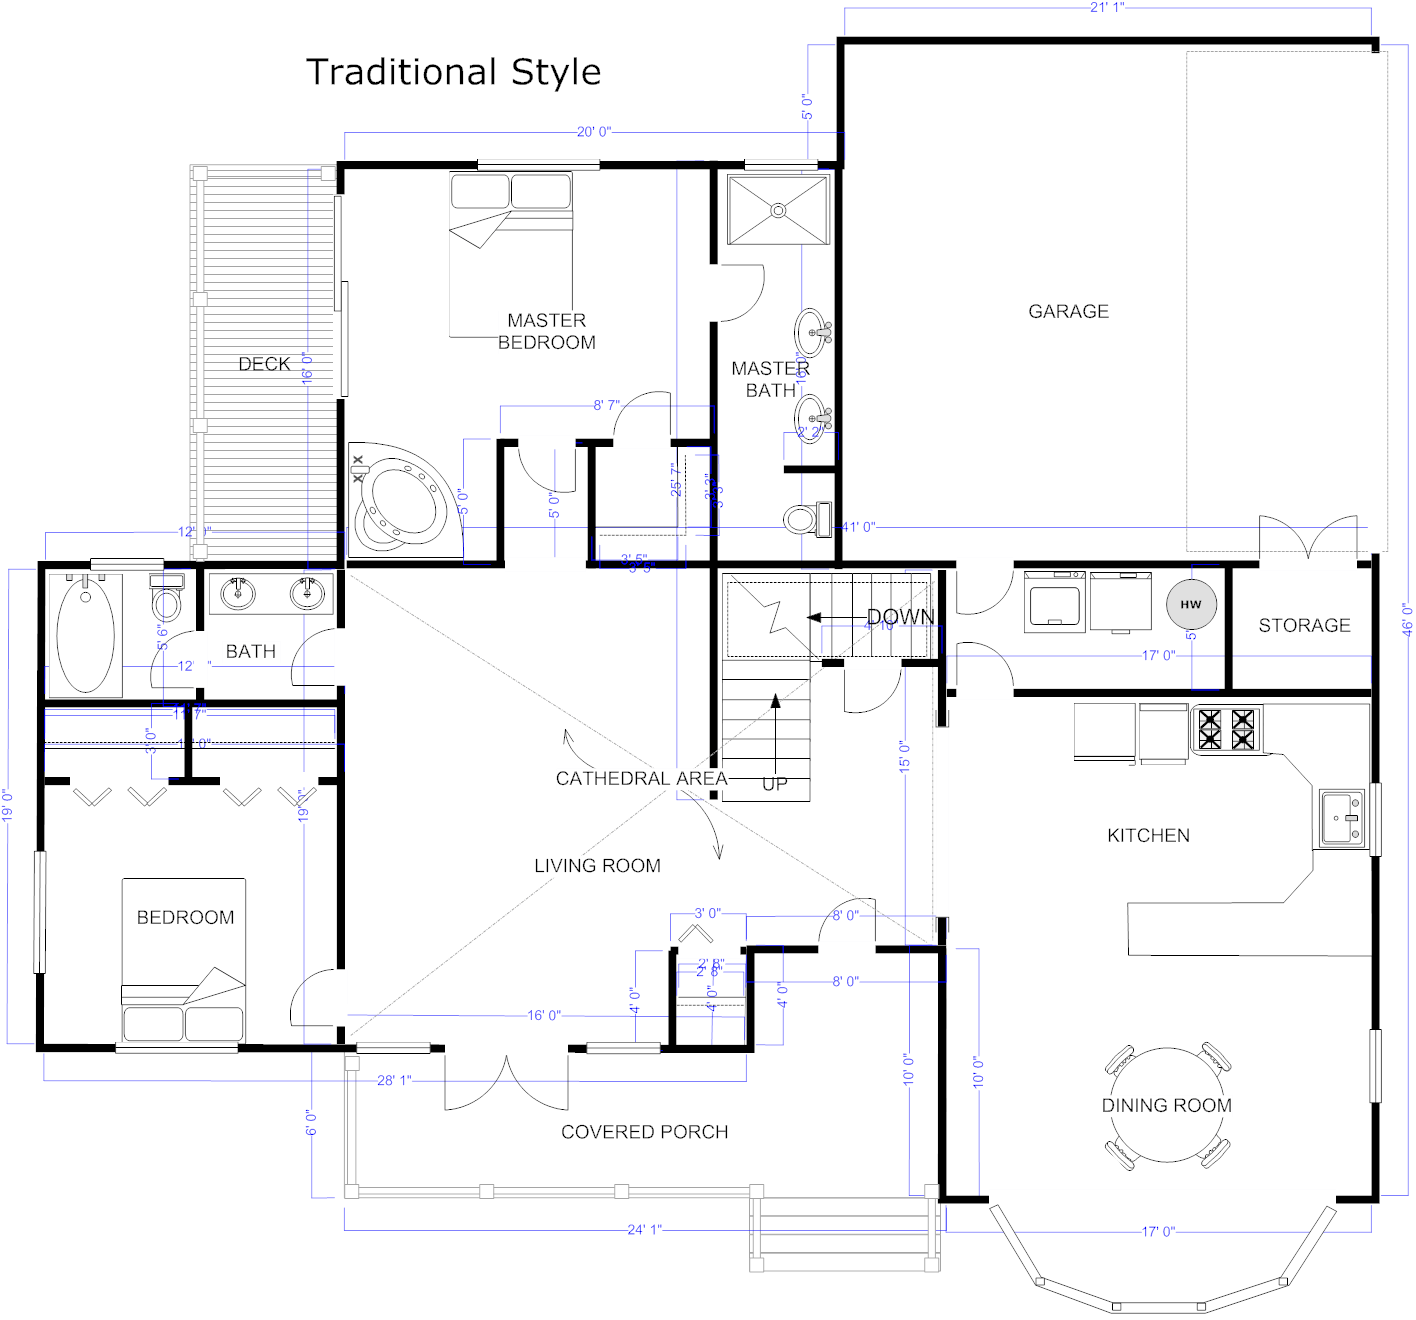 House Drawing Plan Samples